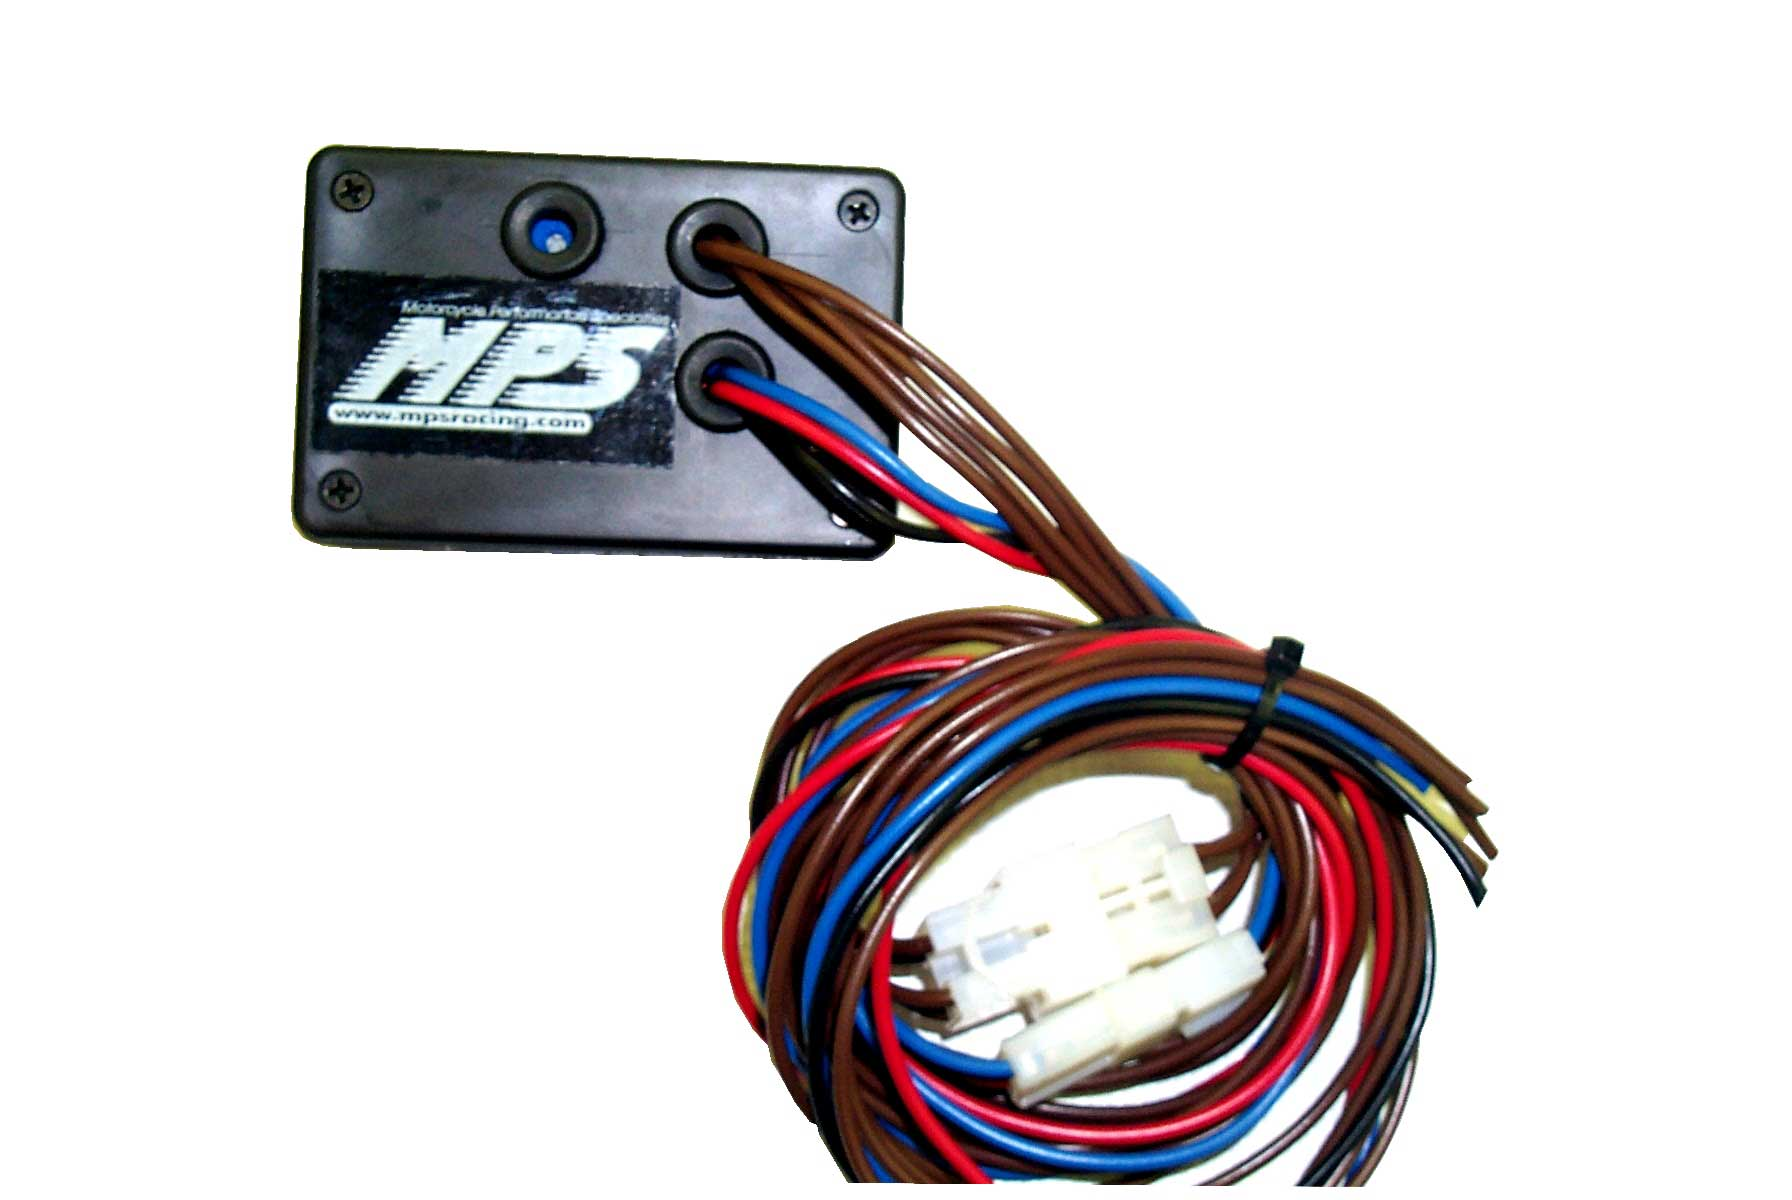 Mps Engine Kills Bicycle Wiring Harness 1 0263 Sport Bike Kill